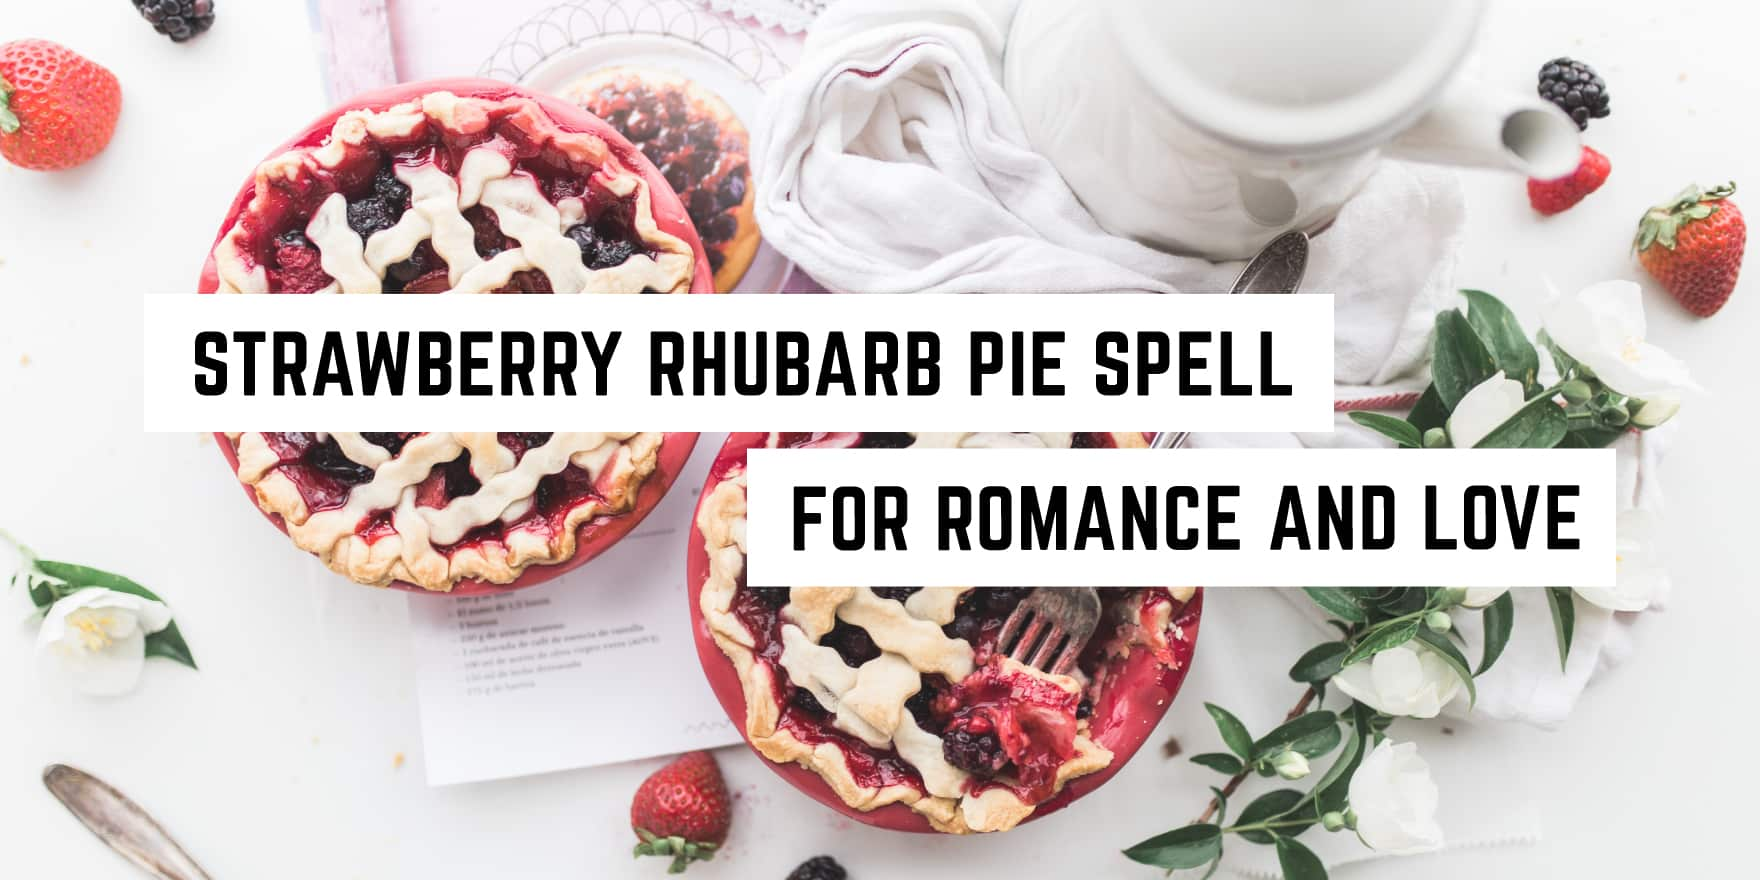 strawberry-rhubarb-pie-spell-recipe for love and romance